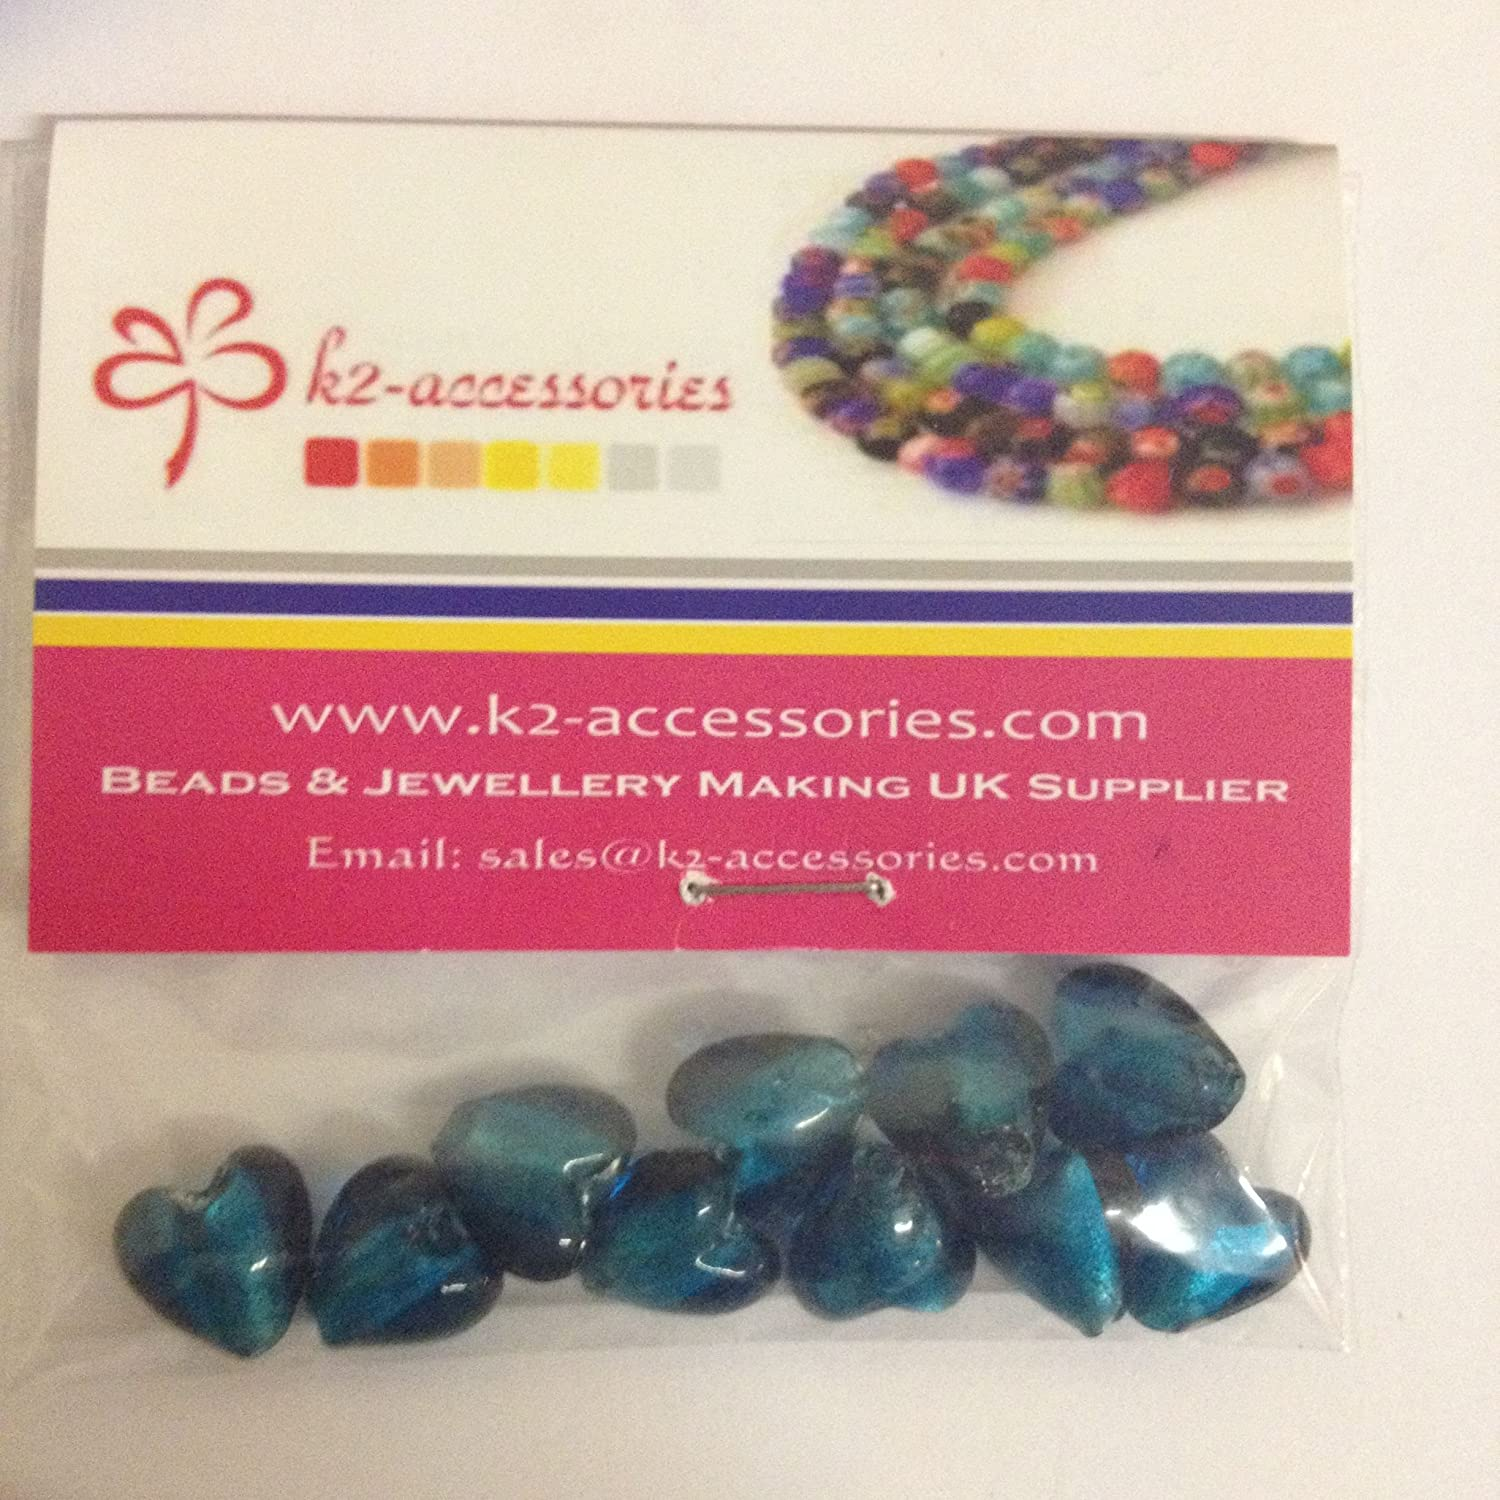 10 pieces 12mm Silver Foil Heart Glass Beads - Turquoise - A4110 k2-accessories